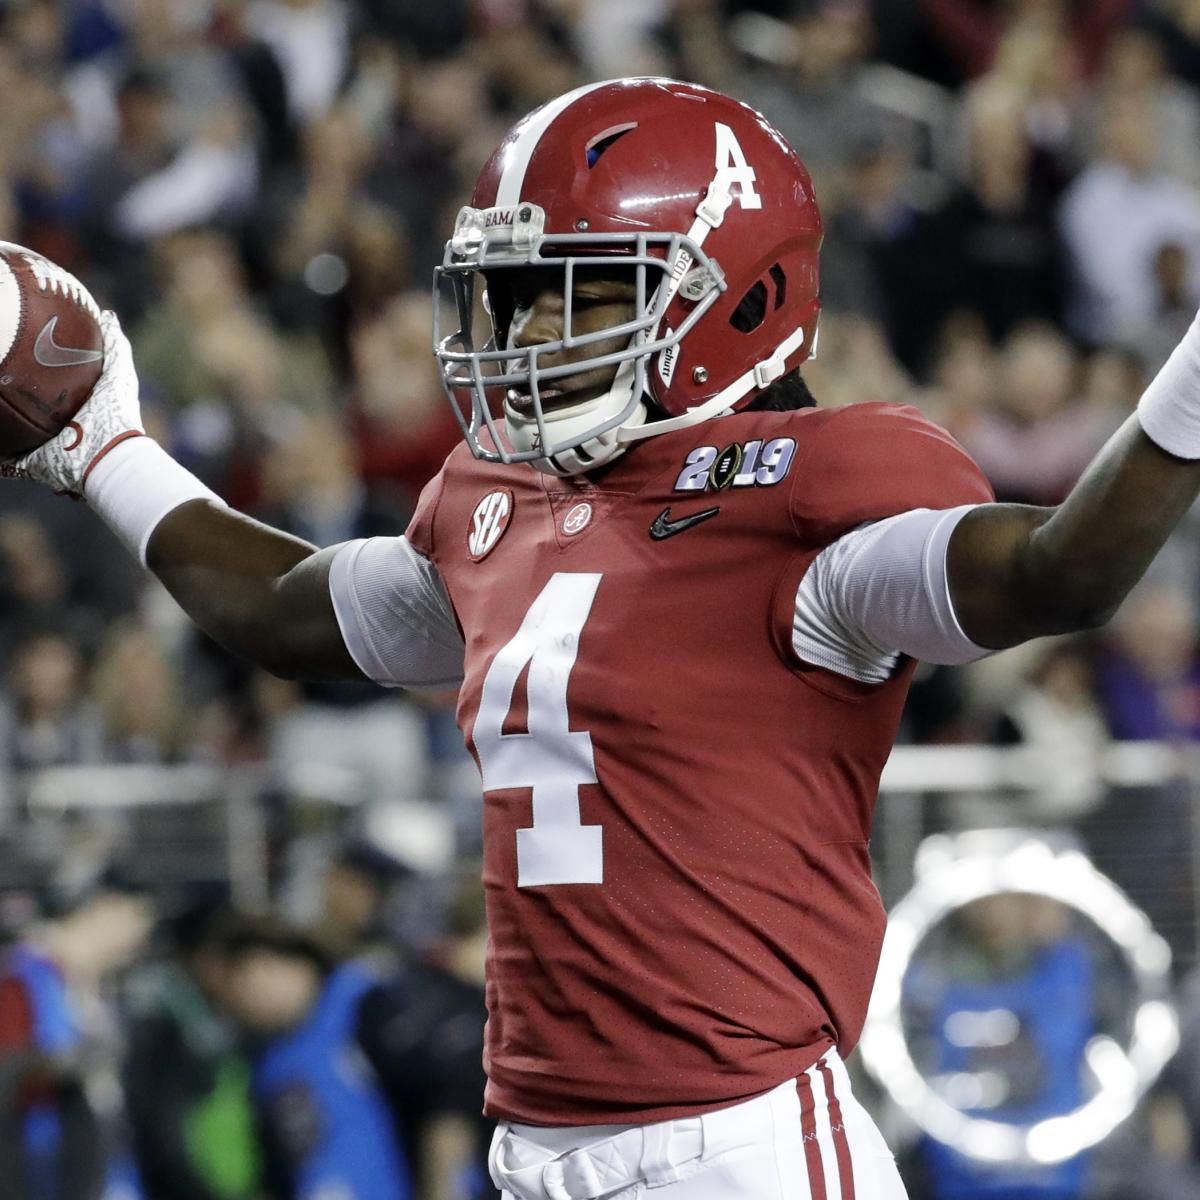 As Jerry Jeudy prepares for his junior season at Alabama, the Crimson Tide star is working with one of the best wide receivers in the NFL...